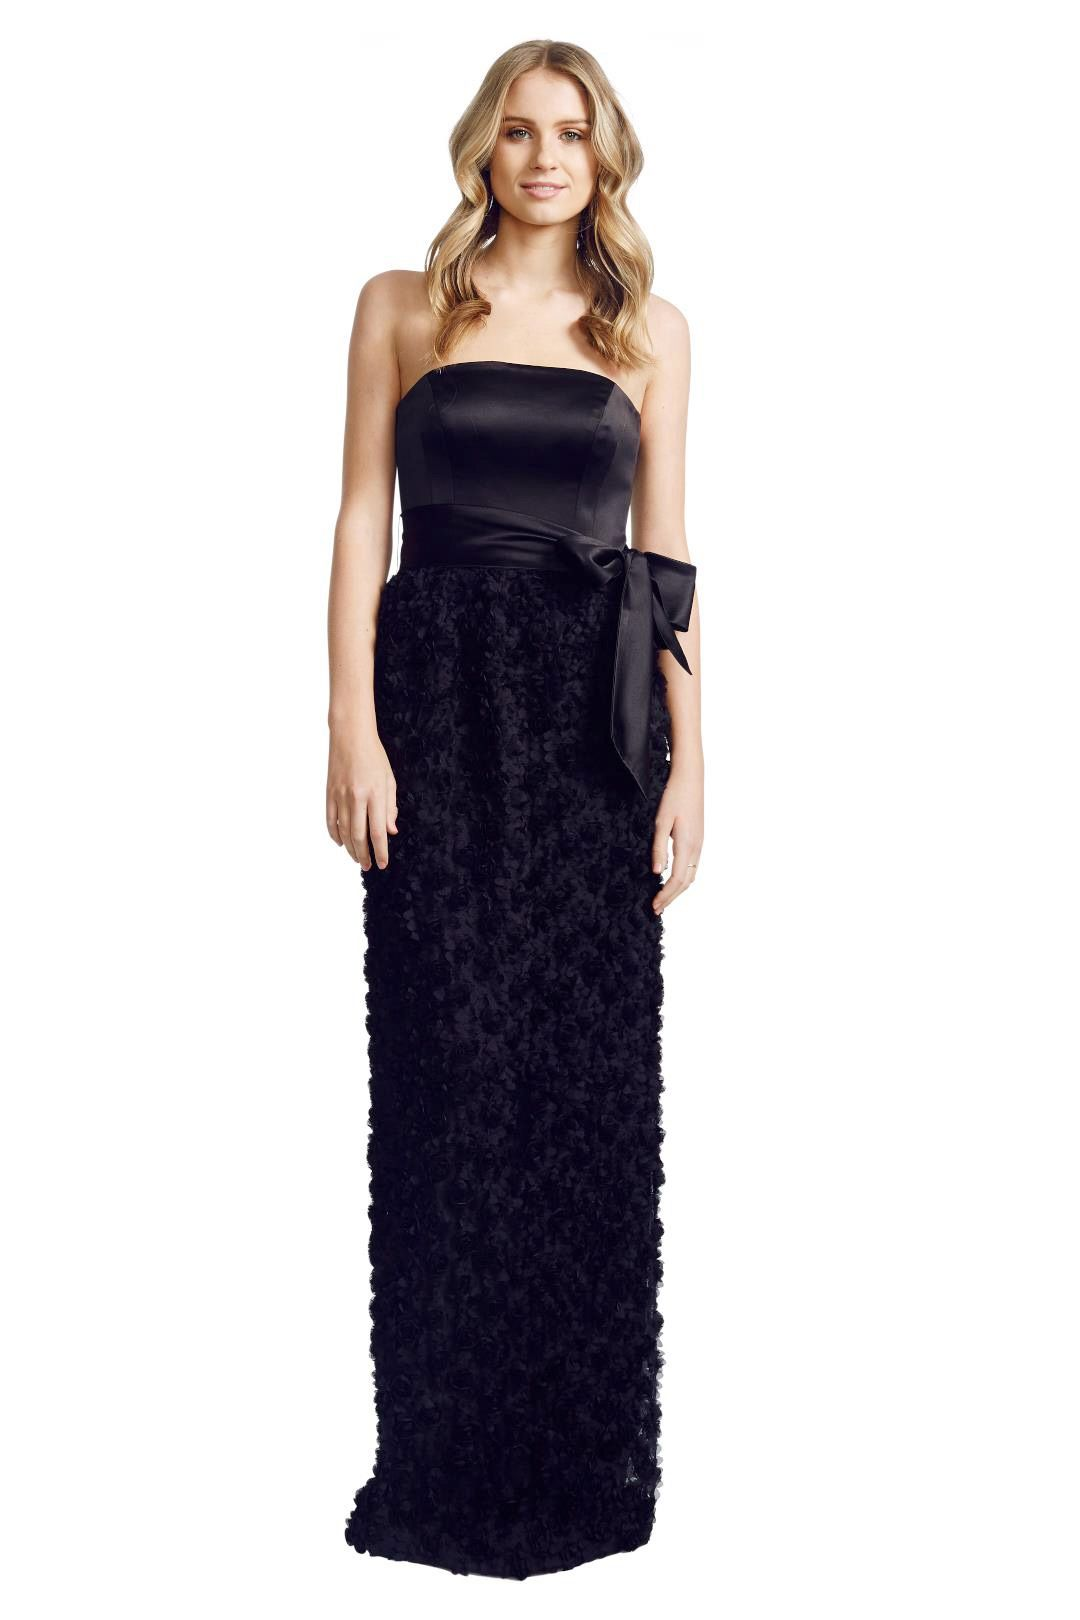 Matthew Eager - Poodle Ball Gown - Black - Front